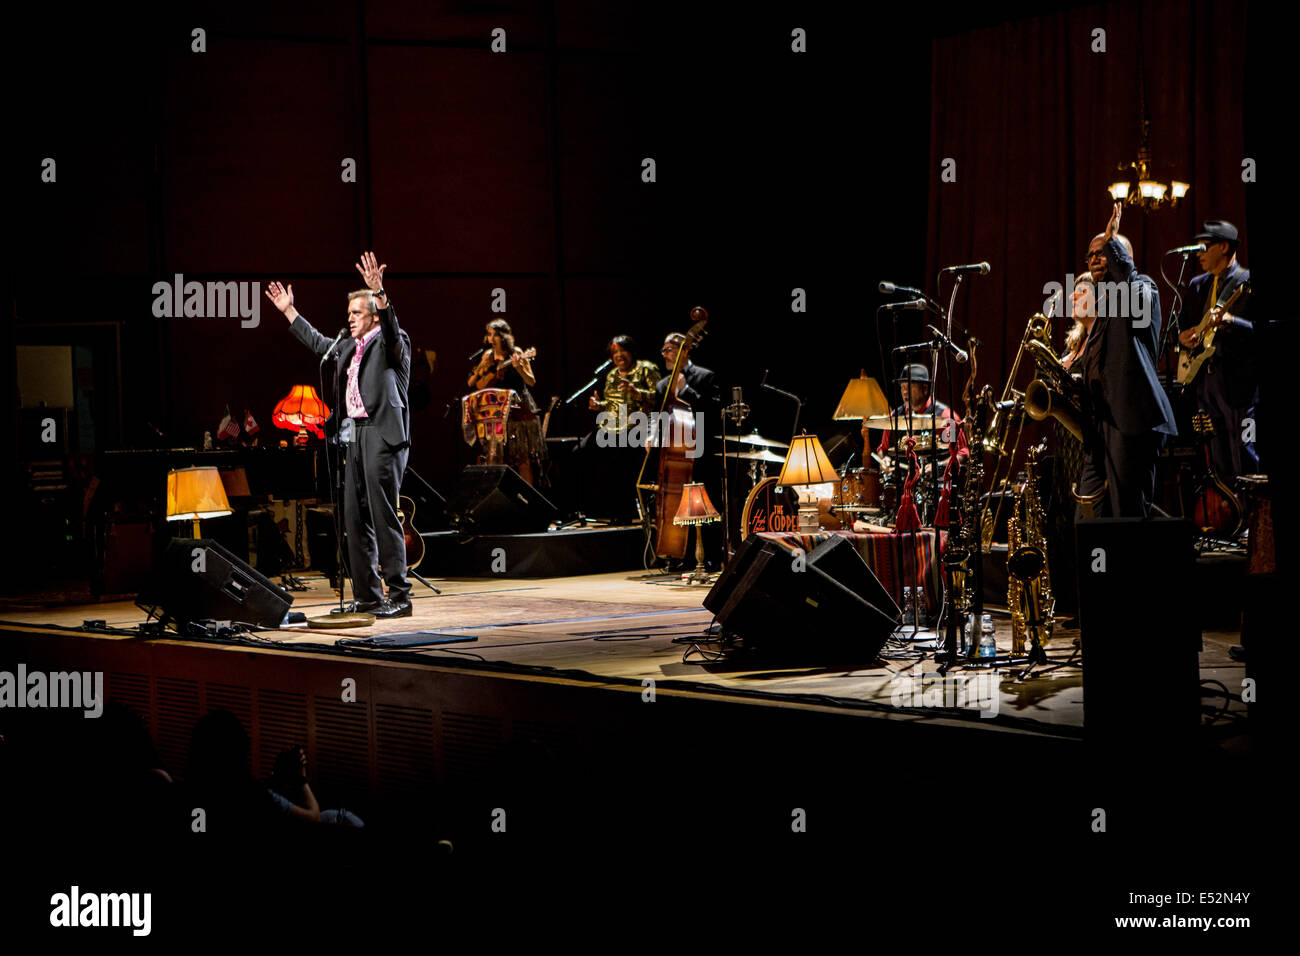 Milan Italy. 17th July 2014. British actor and musician HUGH LAURIE with the Copper Bottom Band performs live at - Stock Image